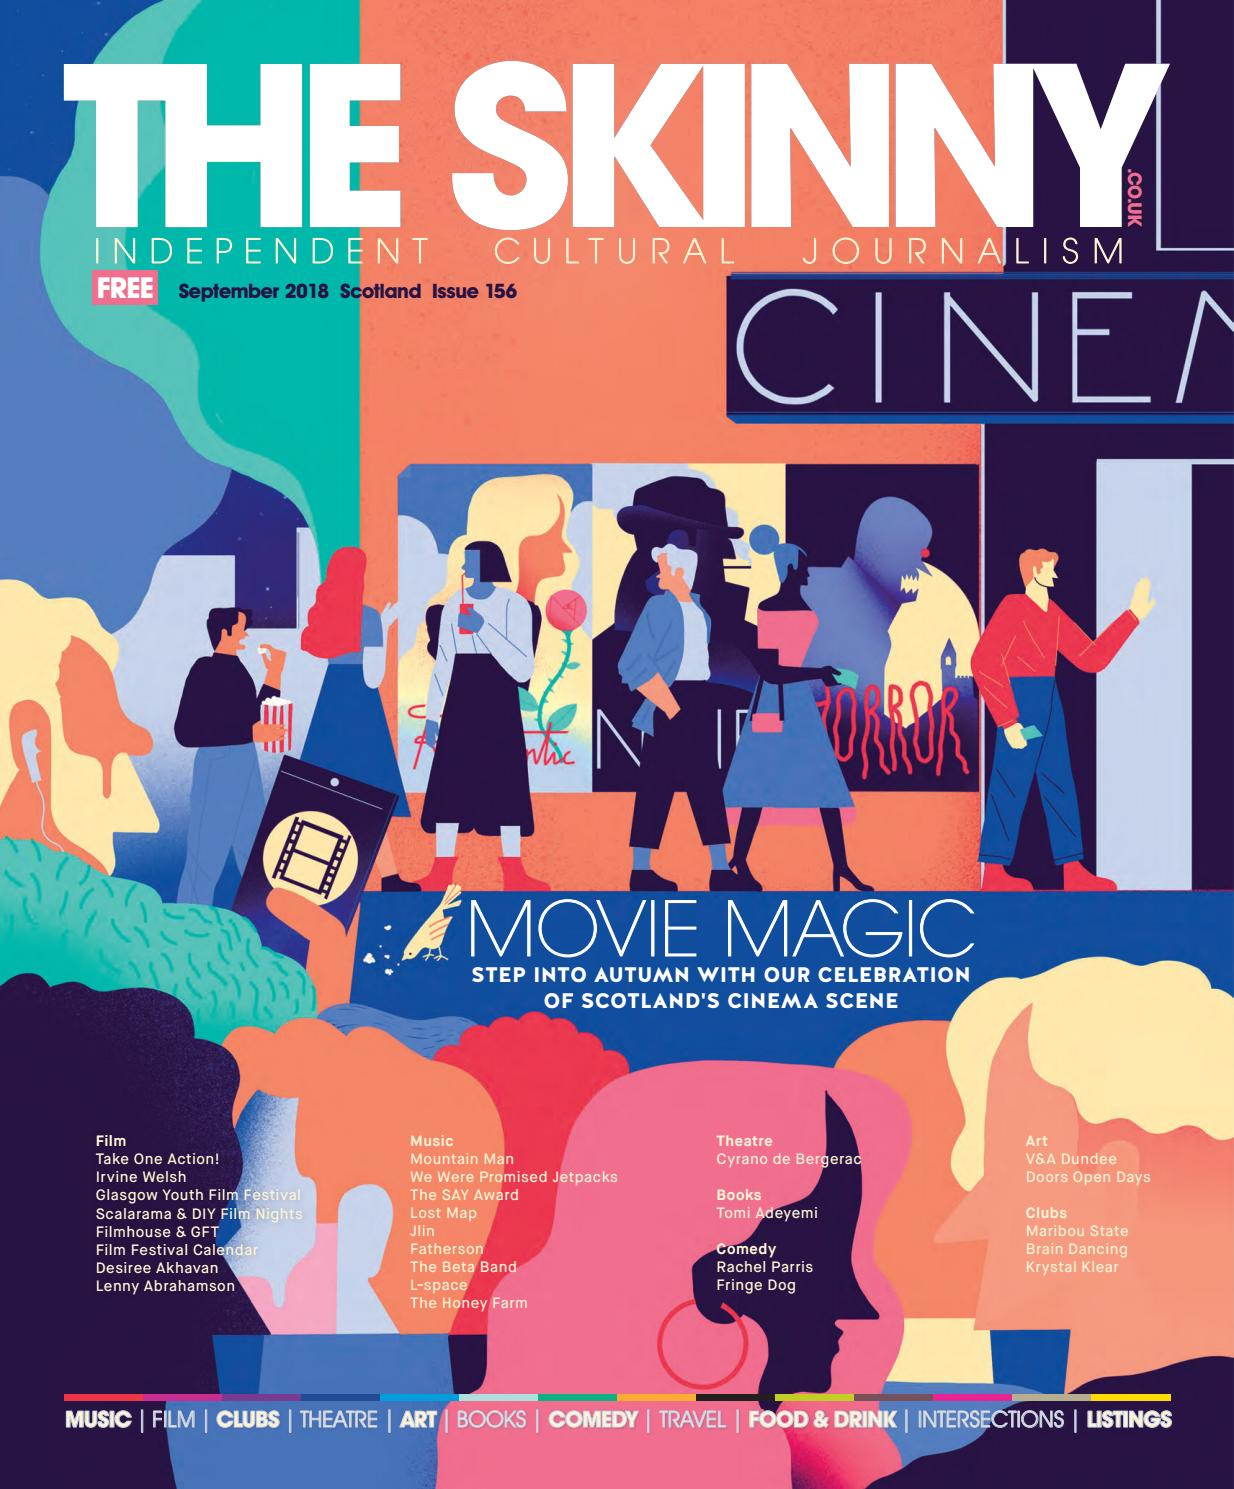 22a5bf7128d The Skinny September 2018 by The Skinny - issuu